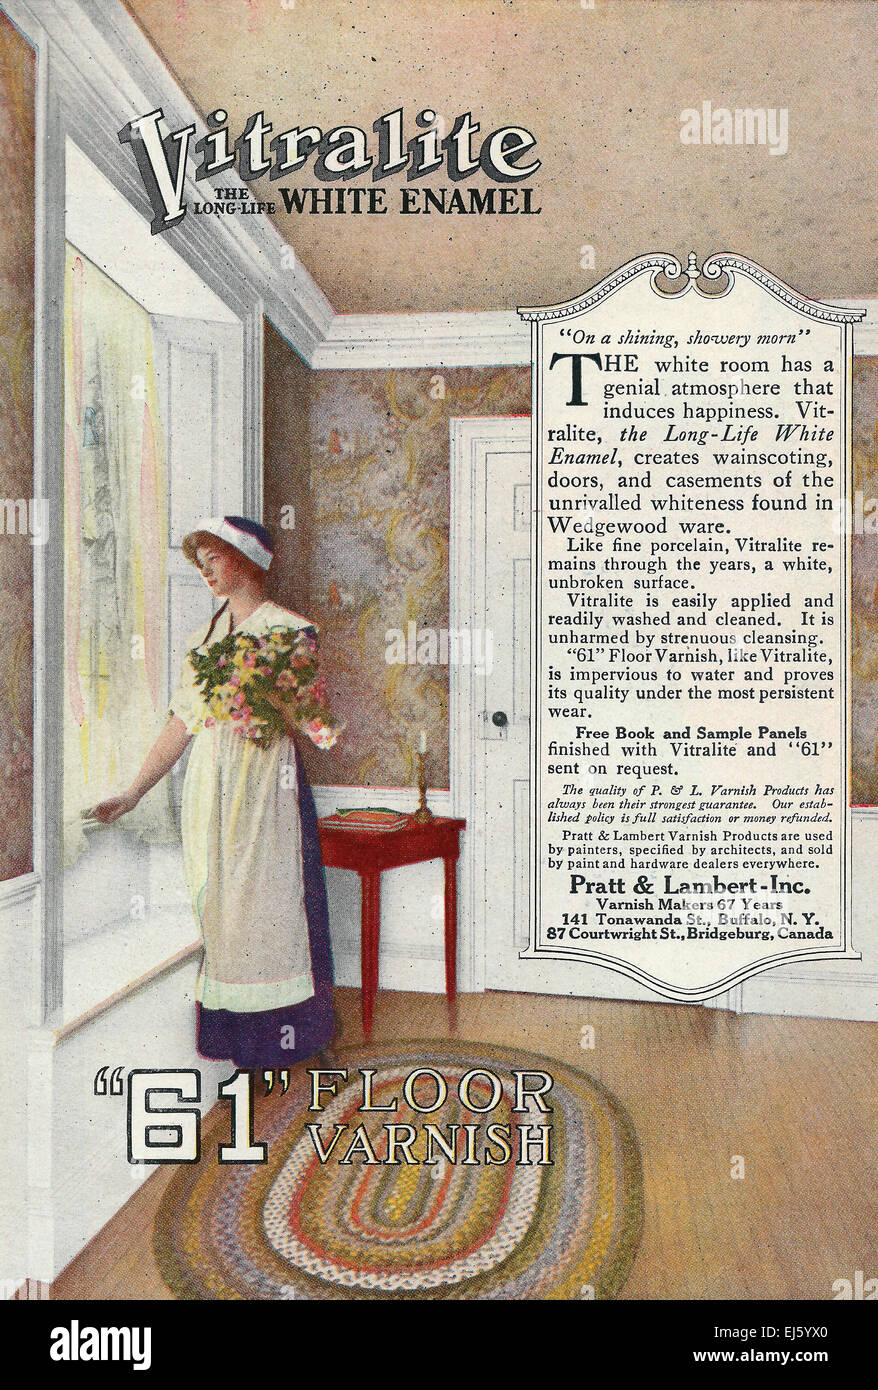 Vitralite White Enamel Floor Varnish - Advertisement, circa 1916 - Stock Image